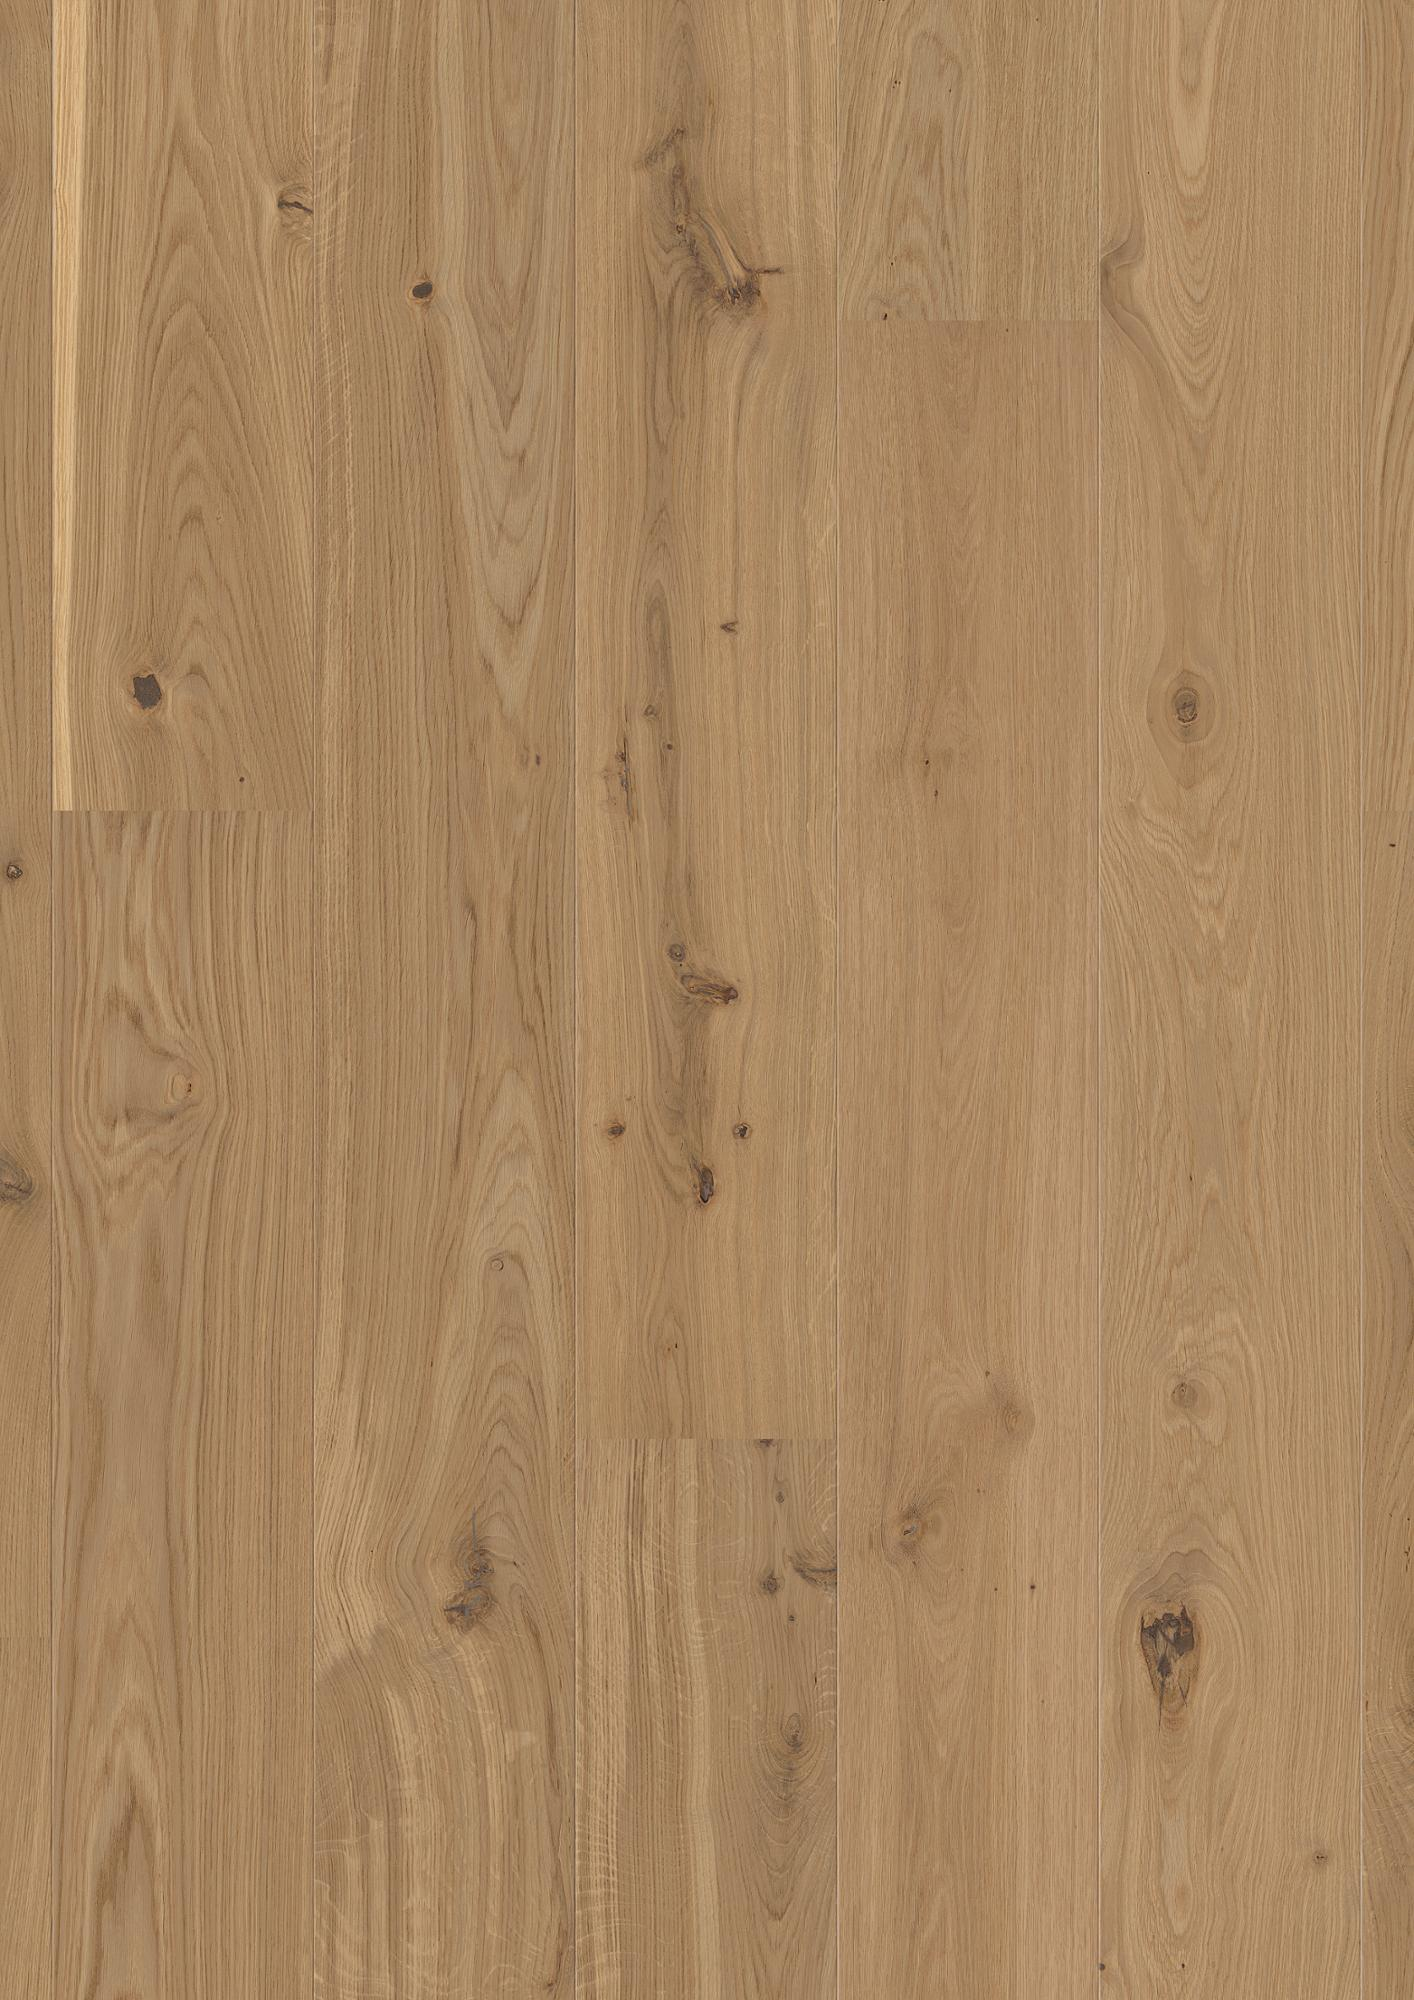 Oak Authentic, Live Natural oil, beveled 2V, brushed, Plank Castle, 14x209x2200mm